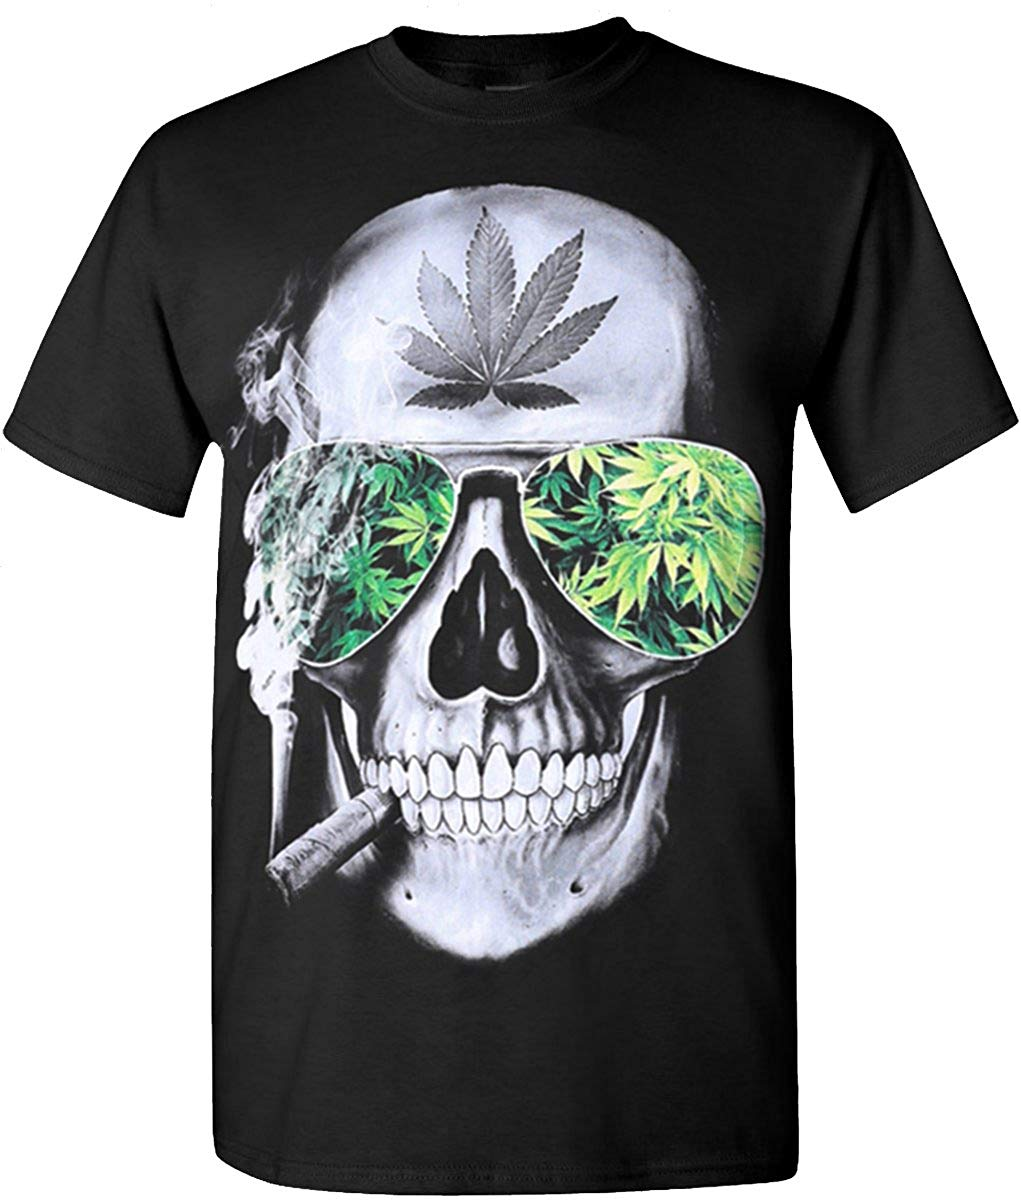 Skull Weed Blaze 420 Hip Hop Legend Rappers T Shirts Print Cotton High Quality top tee